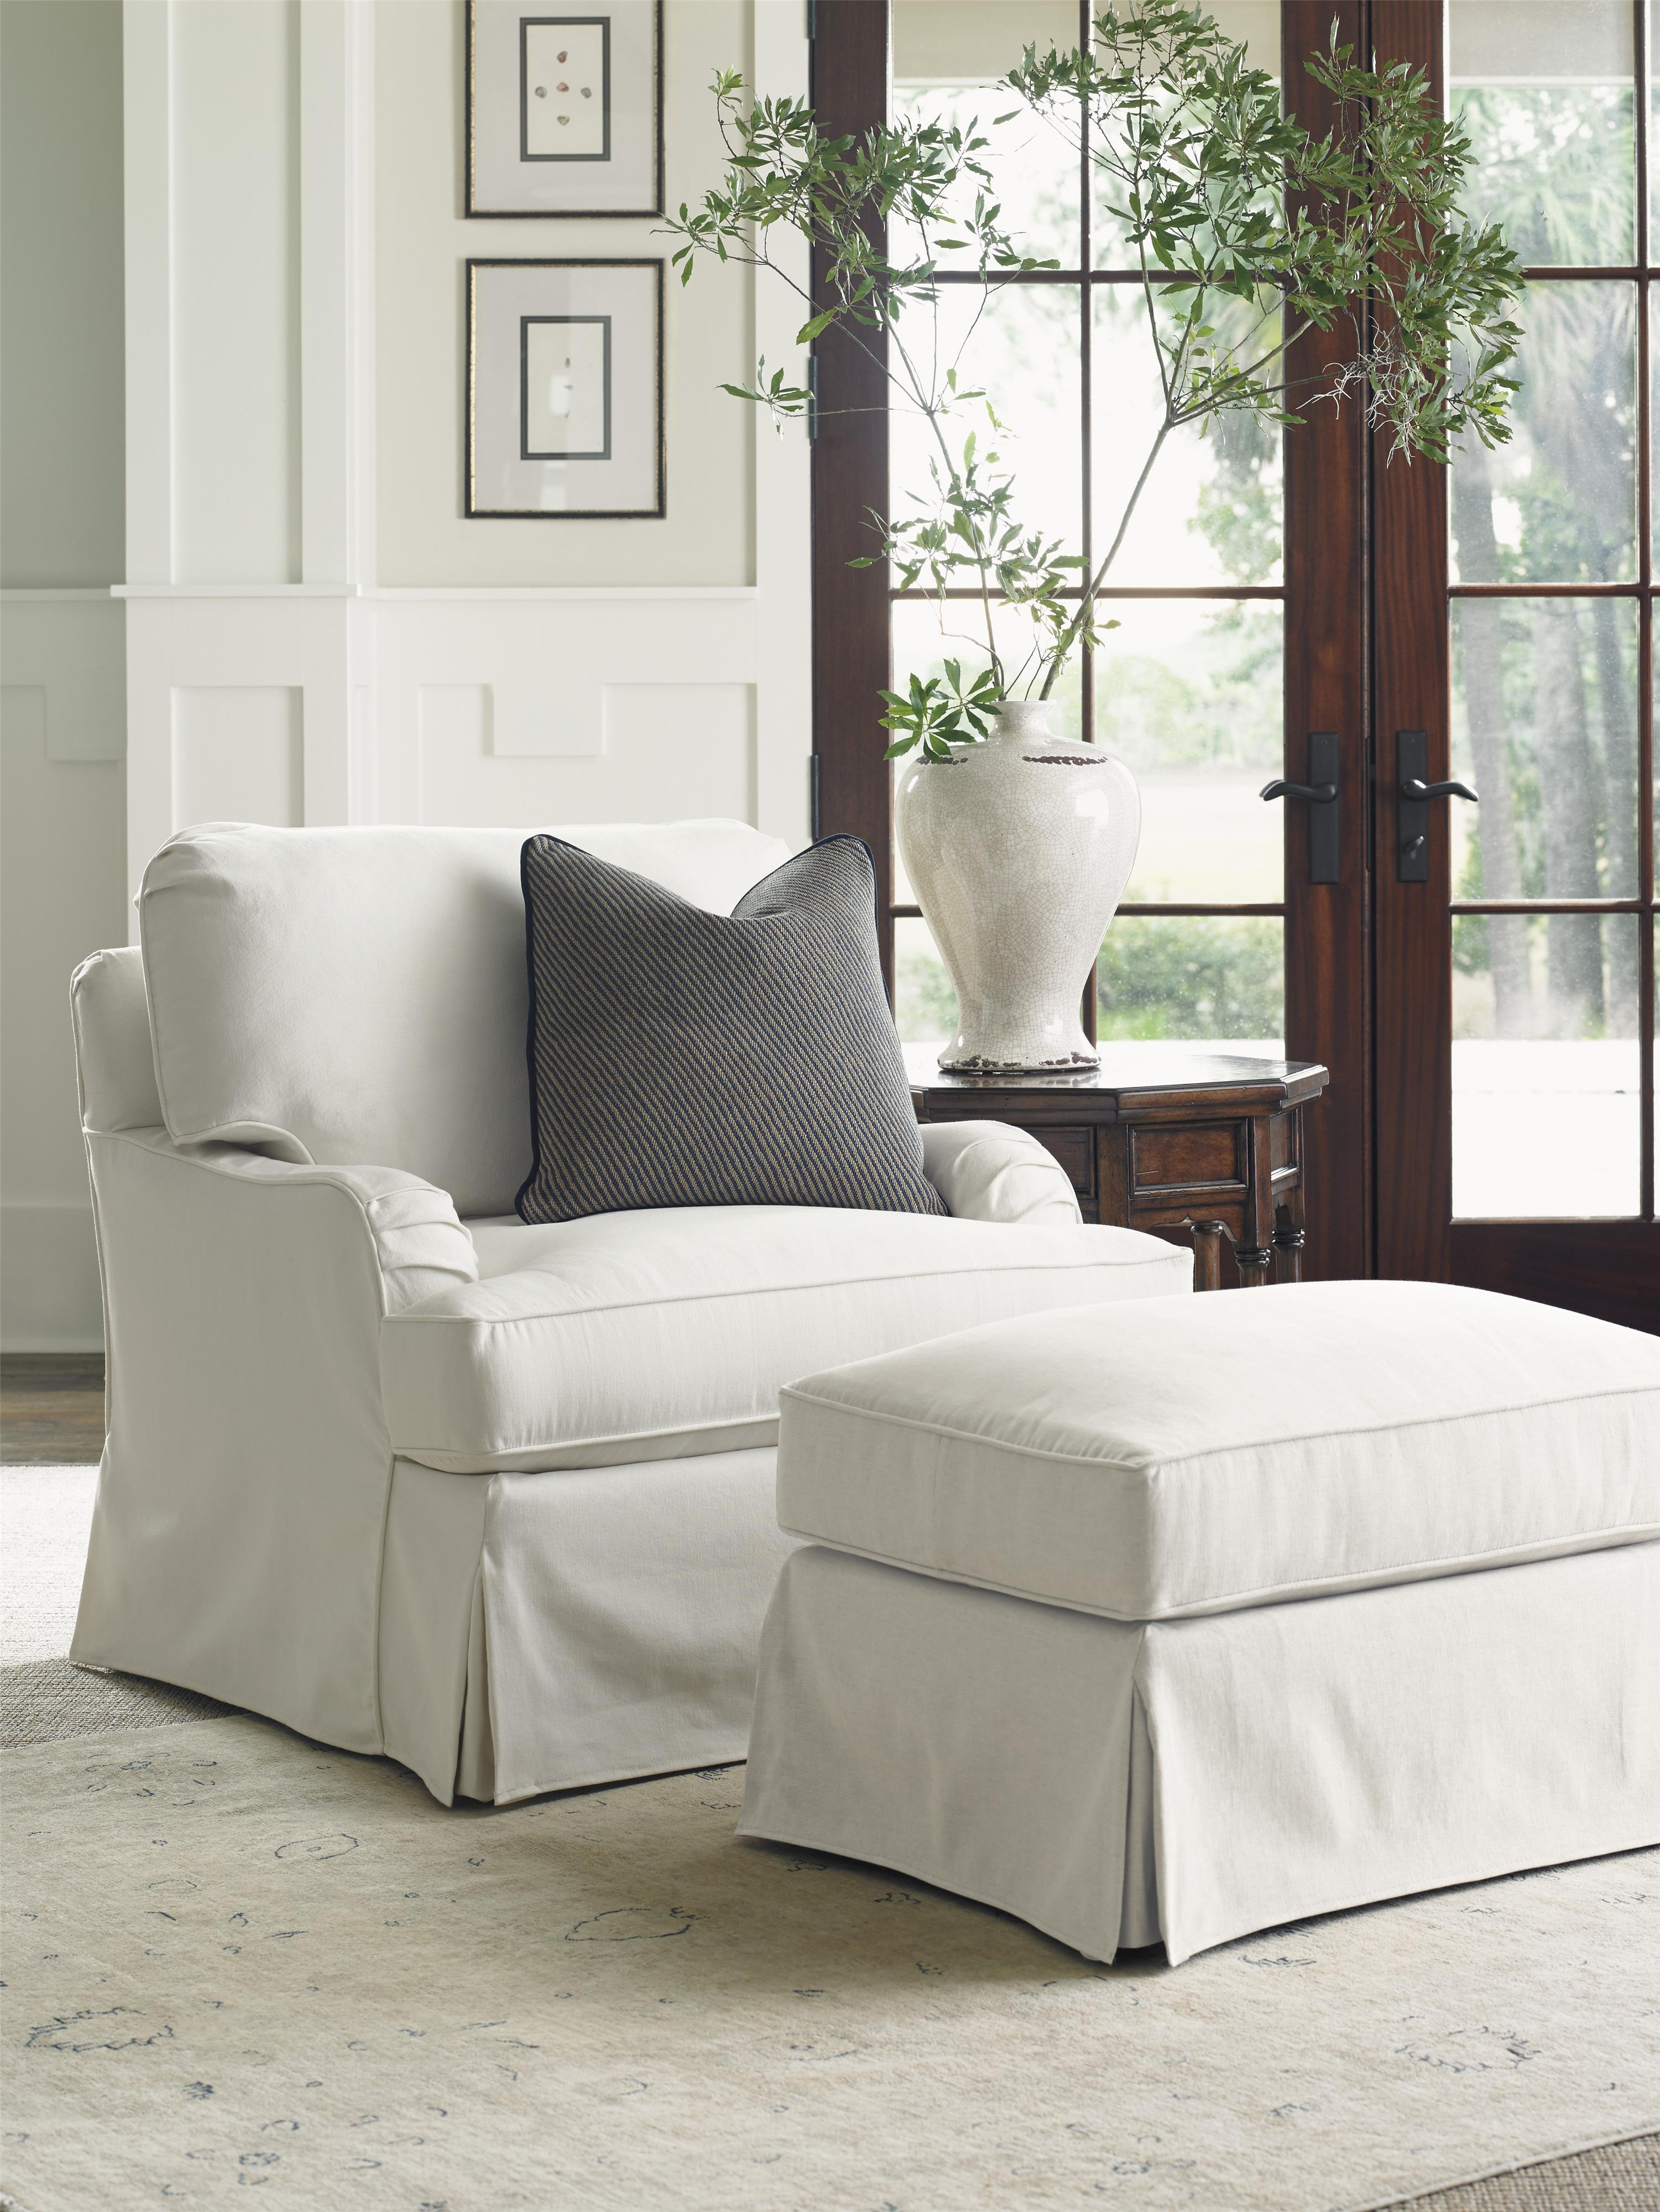 Coventry hills special order upholstery by lexington - Coventry bedroom furniture collection ...